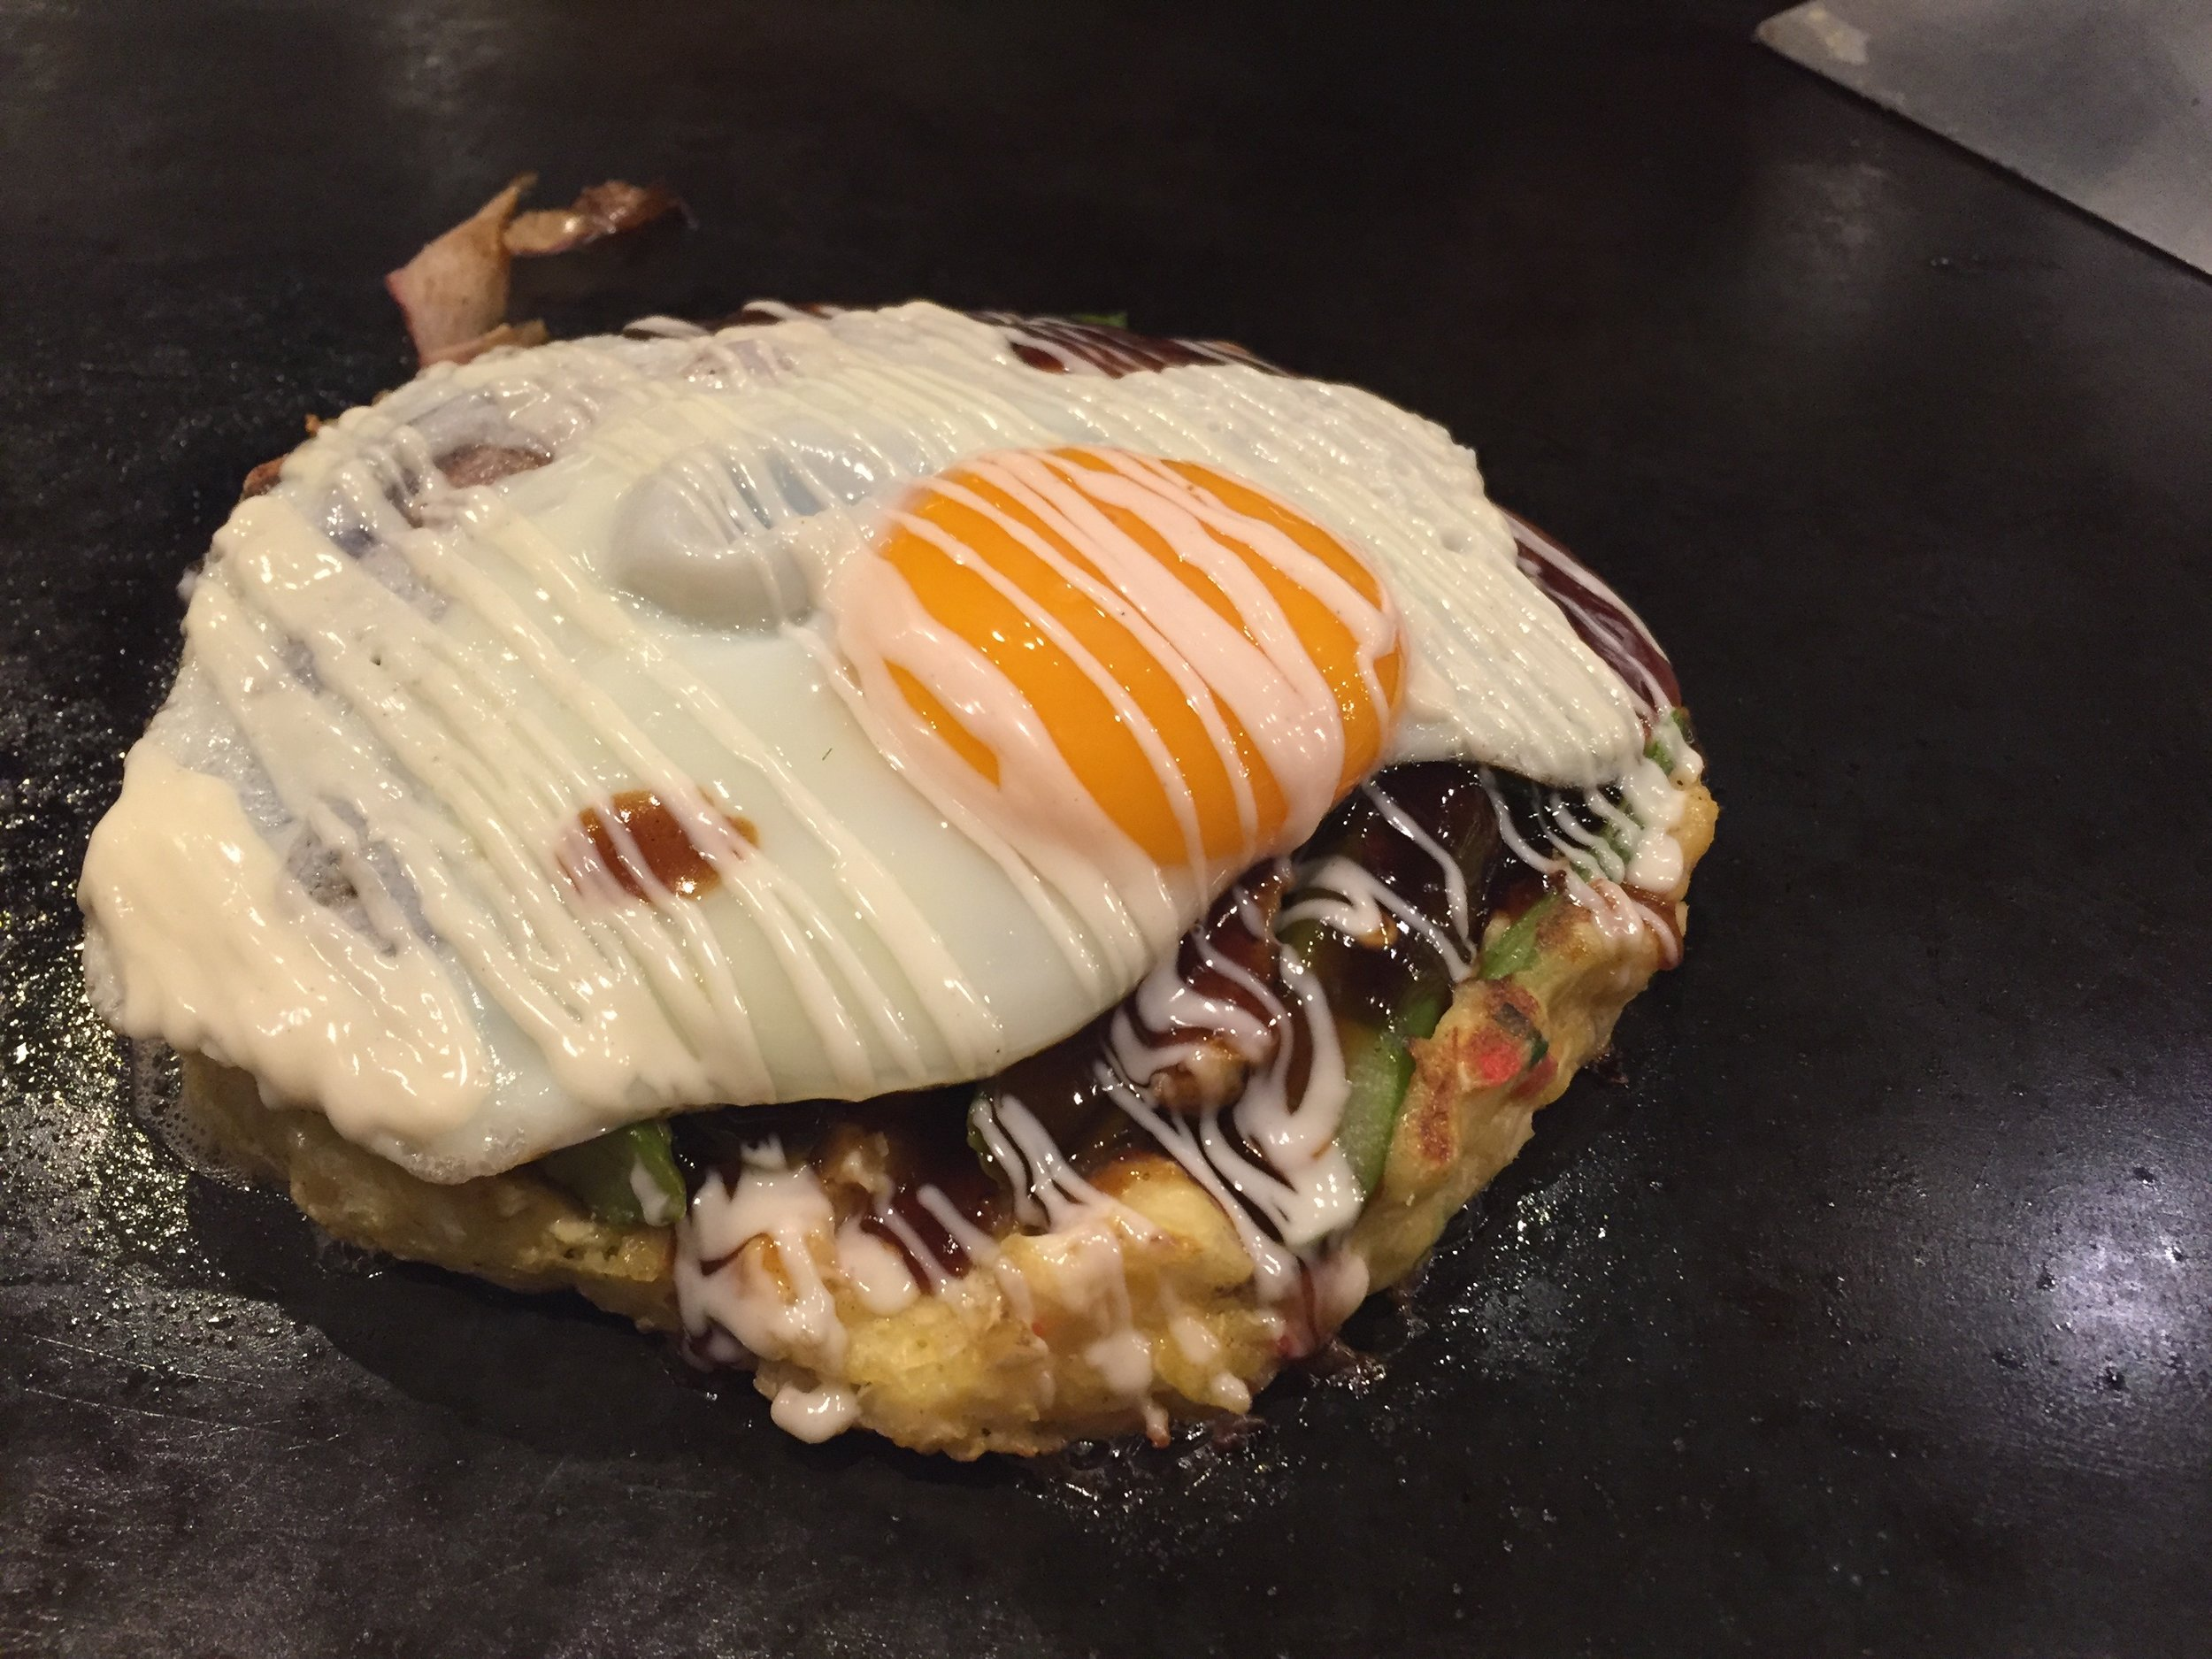 Different variations of okonomiyaki. Both 'Osaka' style as they don't contain noodles.